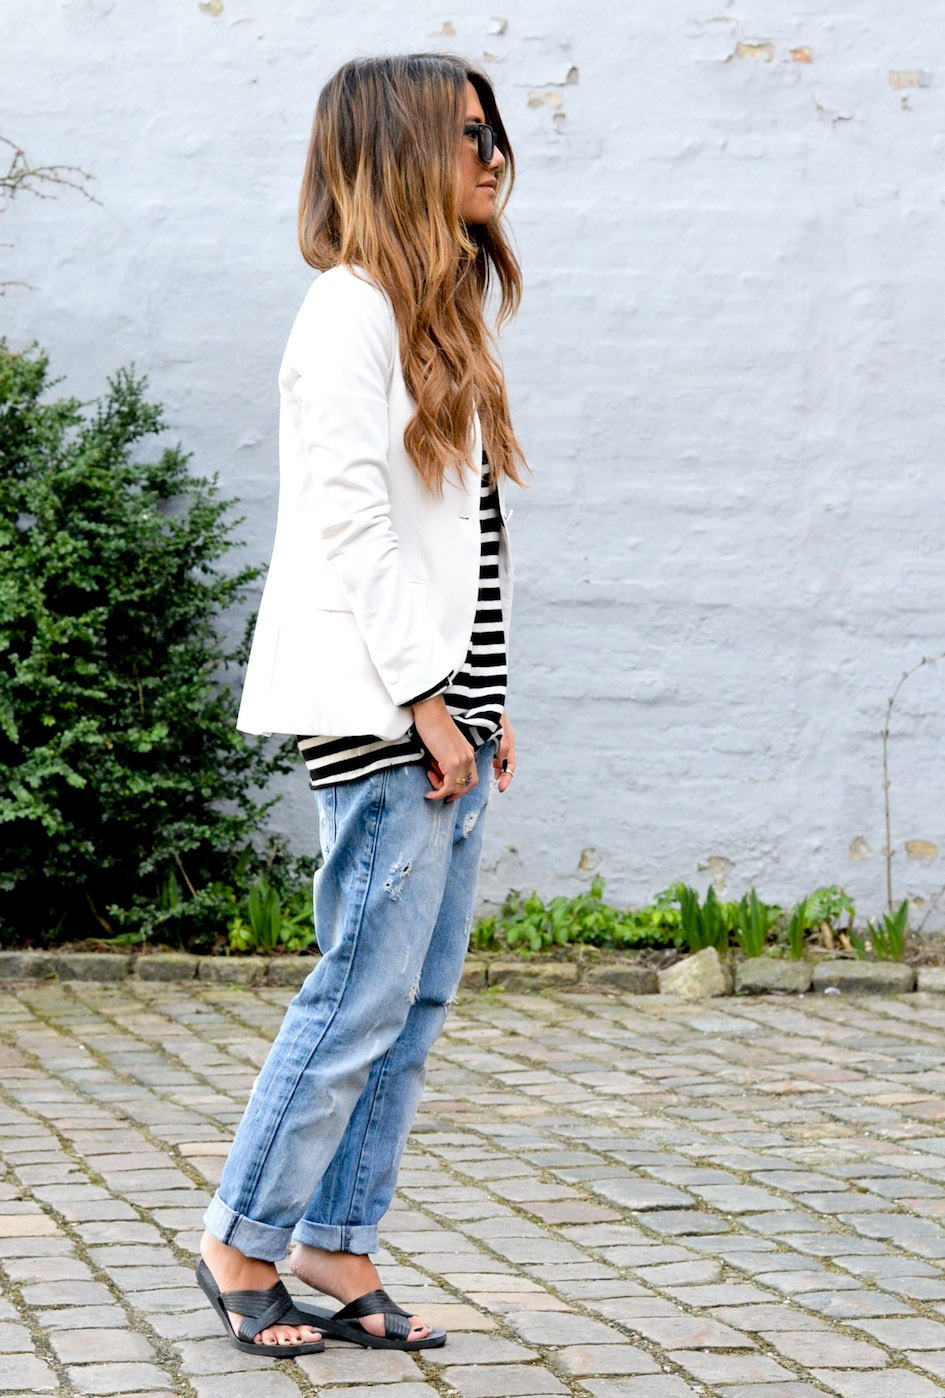 Stone Muse Is Wearing H&M Striped Top And White Blazer From H&M And Distressed Secondhand Jeans